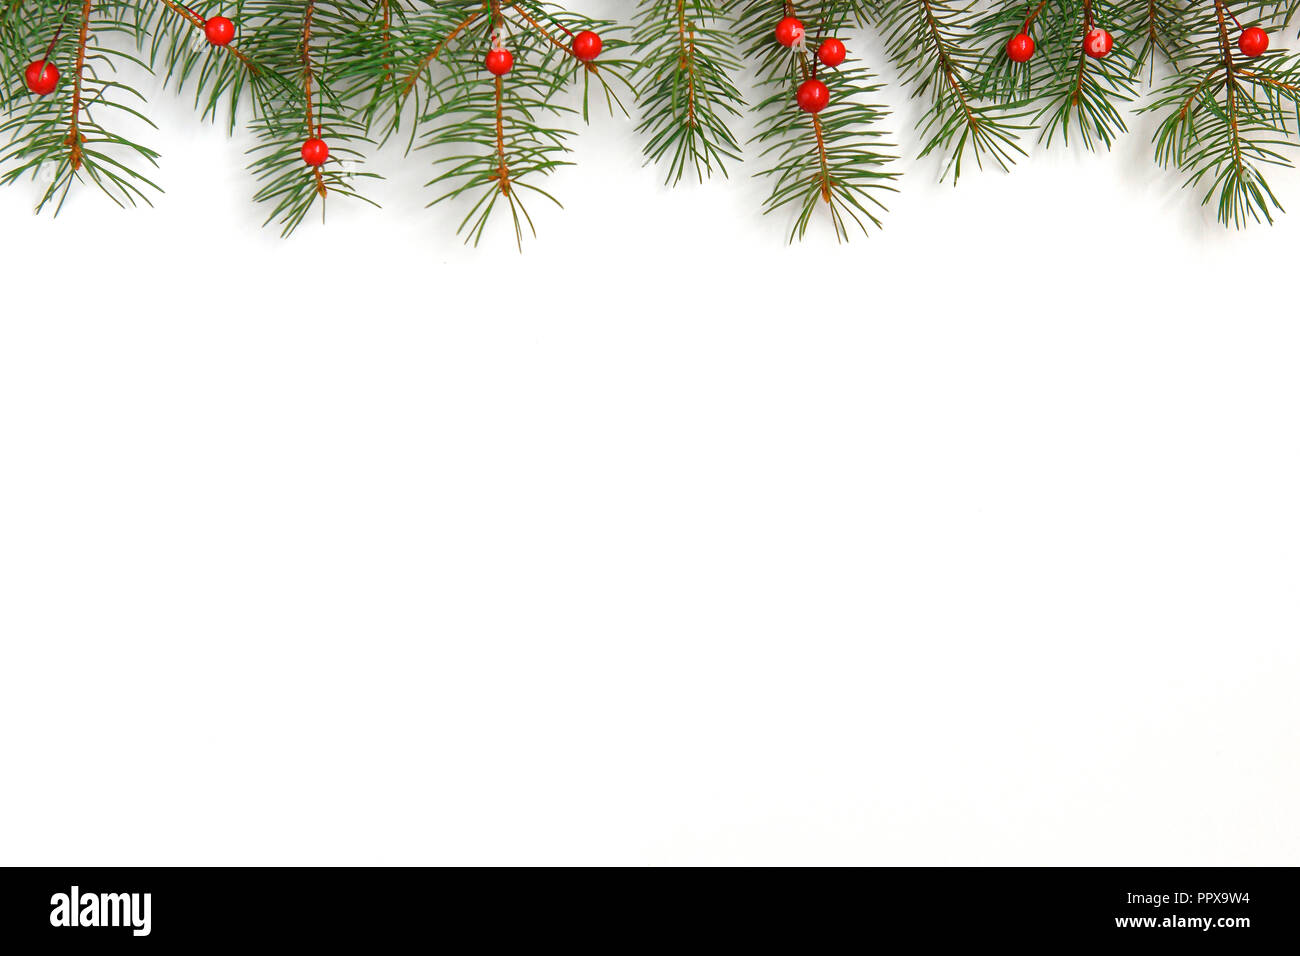 Christmas Card Background.Christmas Background With Xmas Tree And Red Berries On White